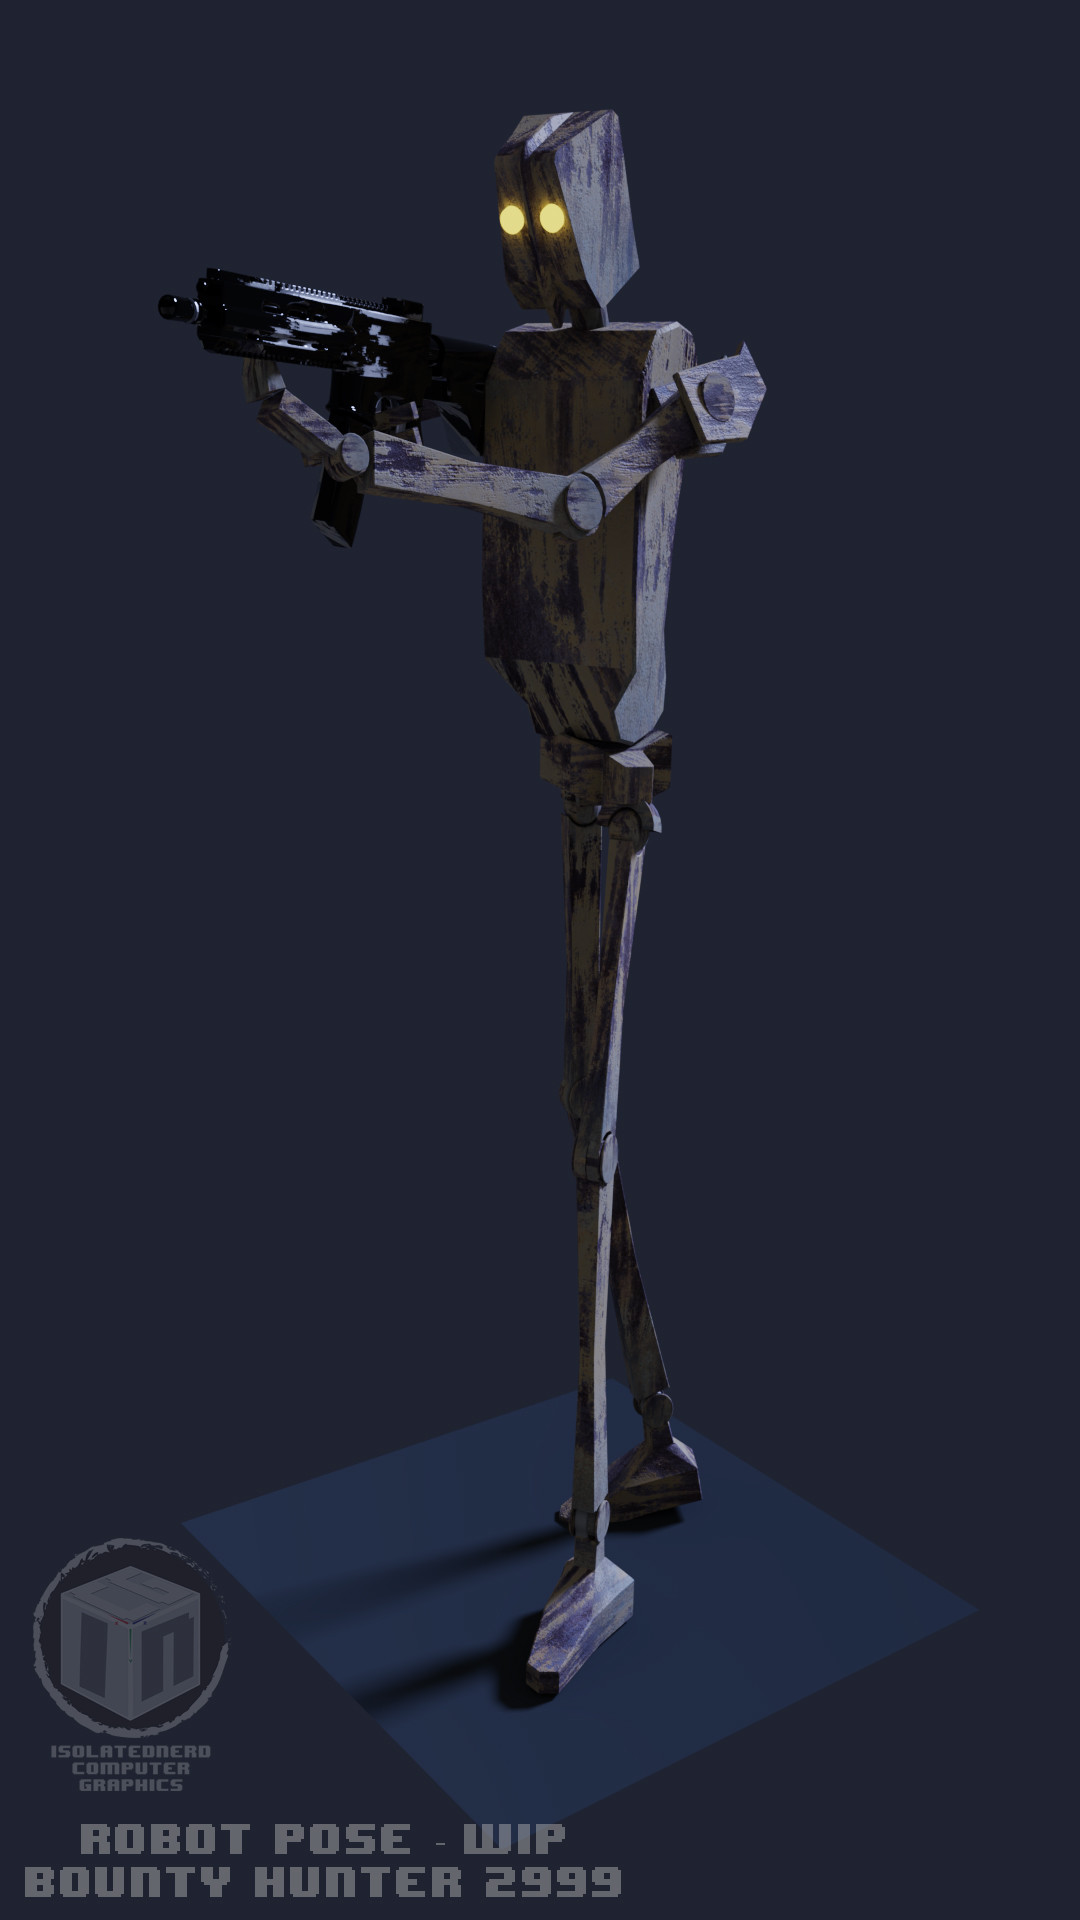 Posing robot - At this point i wont made  a greater 3d model for this robots.